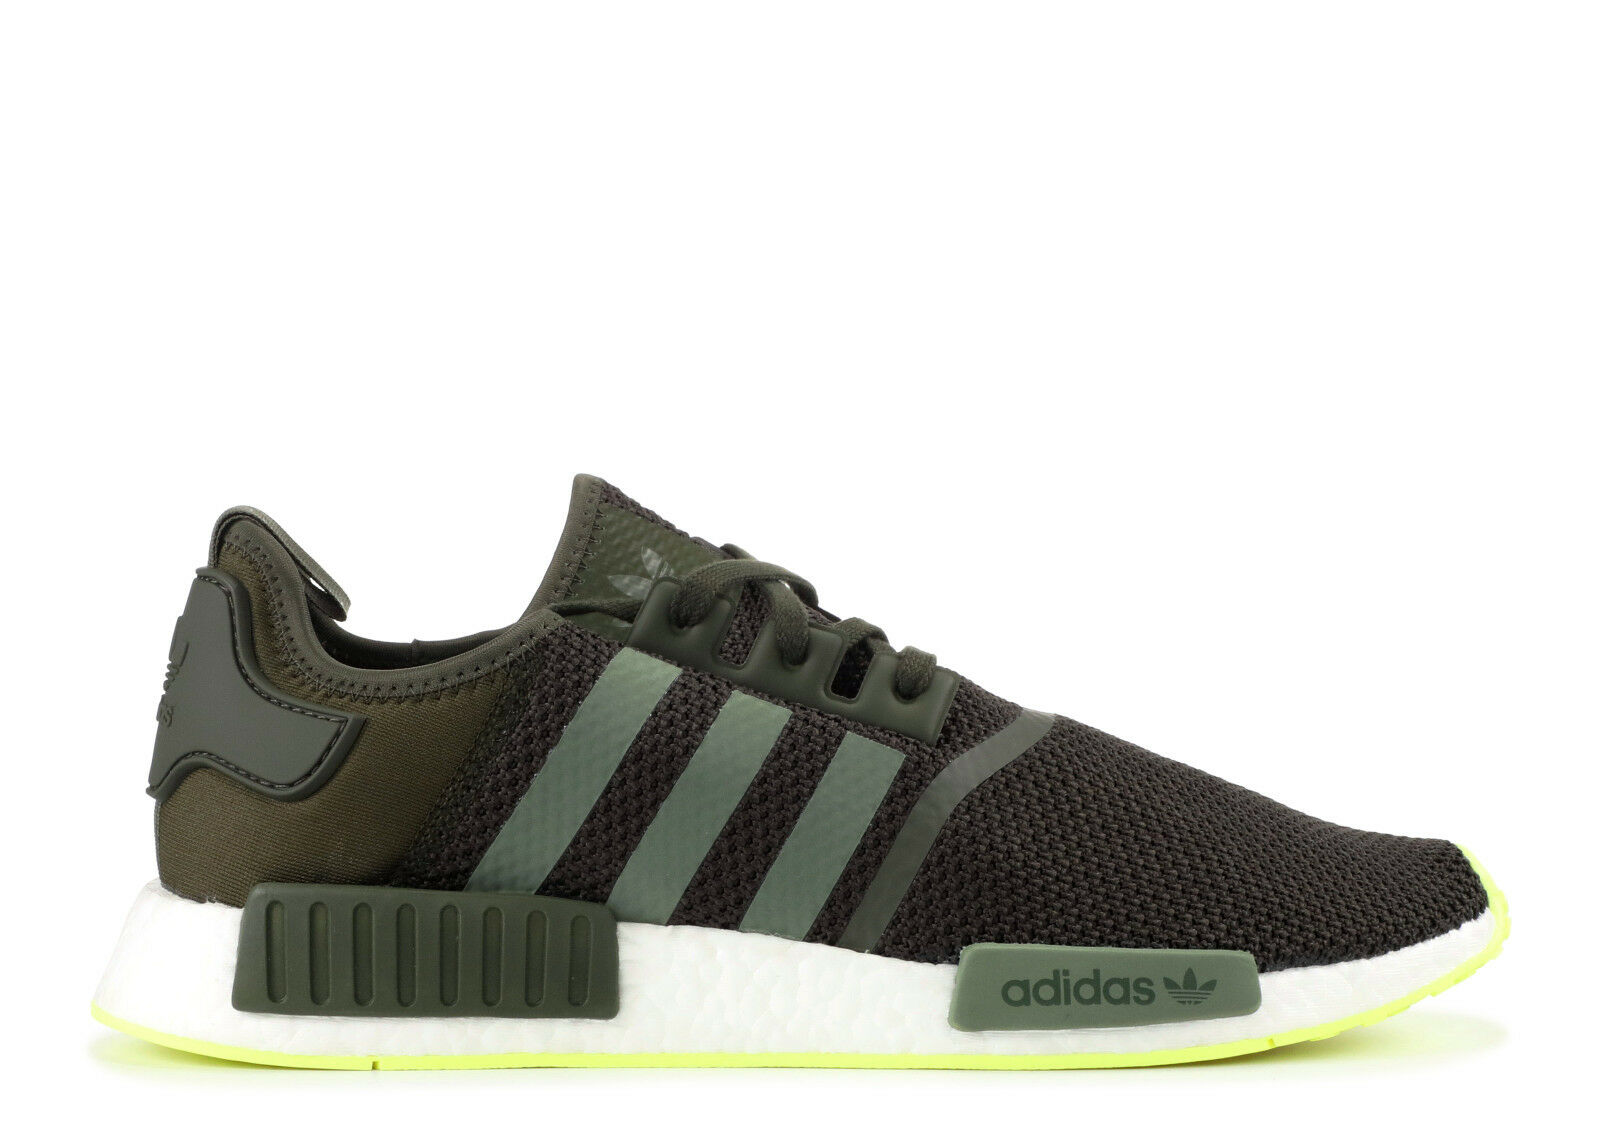 70d5547d5 Adidas Originals új NMD  R1 Men Night 227454 Cargo  Base Zöld  ÚJ CQ2414   DUPLA BOXED